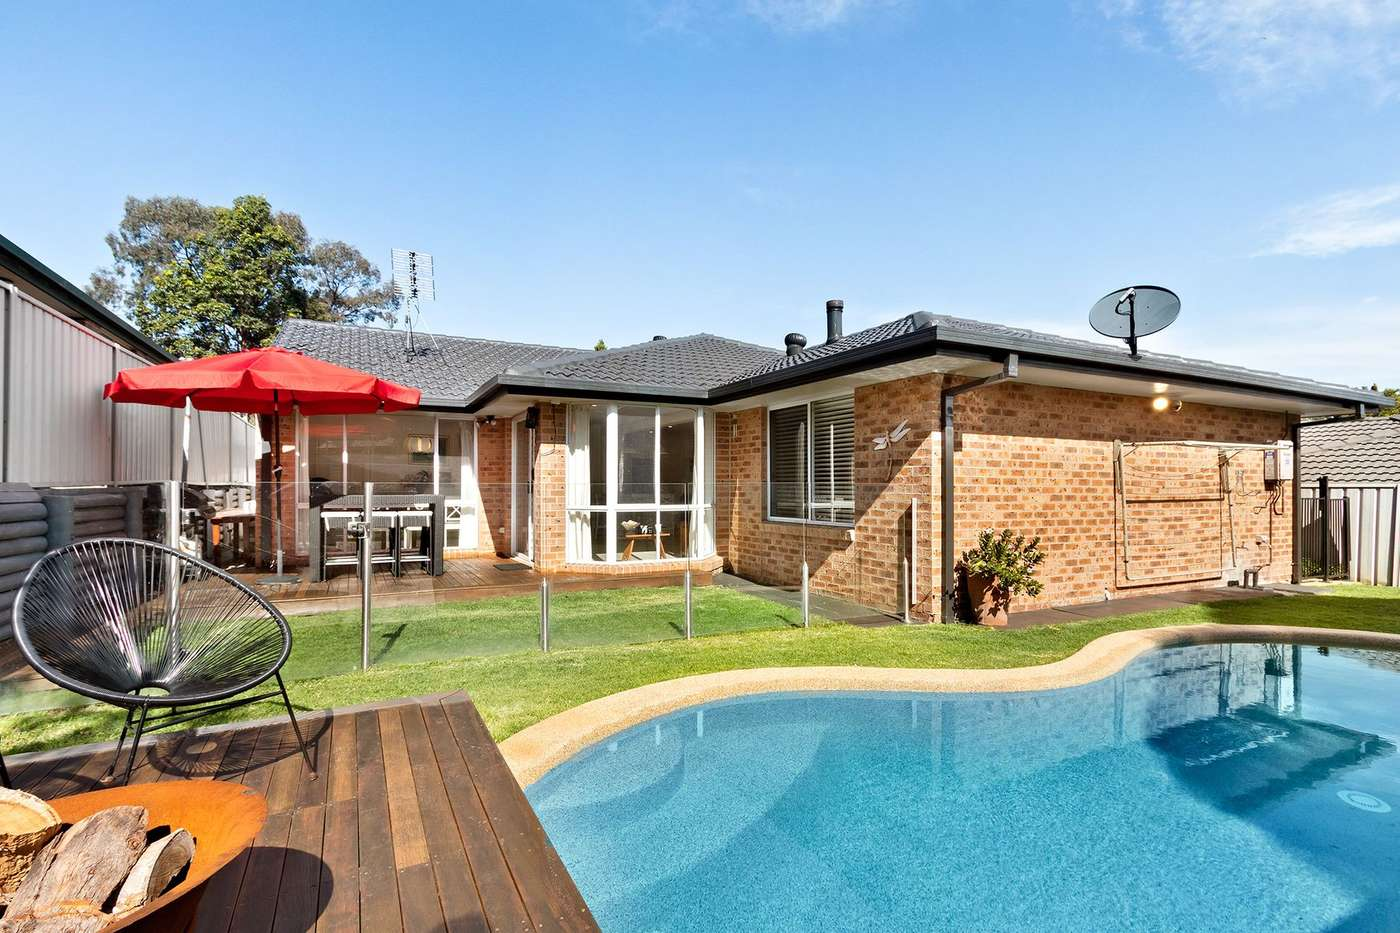 16 Lindale Way, Lakelands, NSW 2282 - House For Sale - Homely